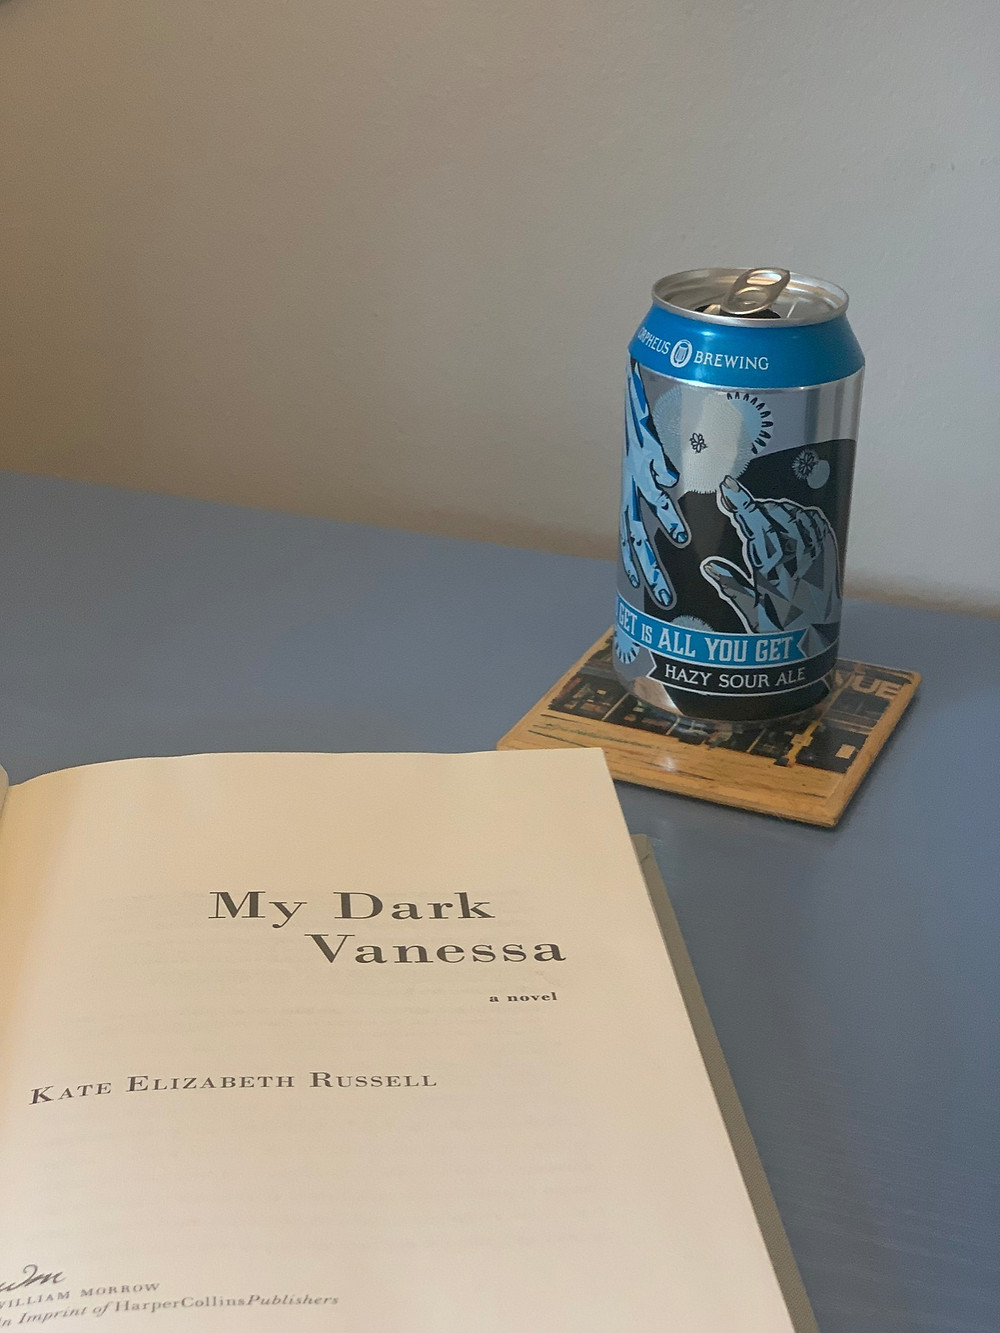 Open copy of My Dark Vanessa on a table with an open can of beer next to it.